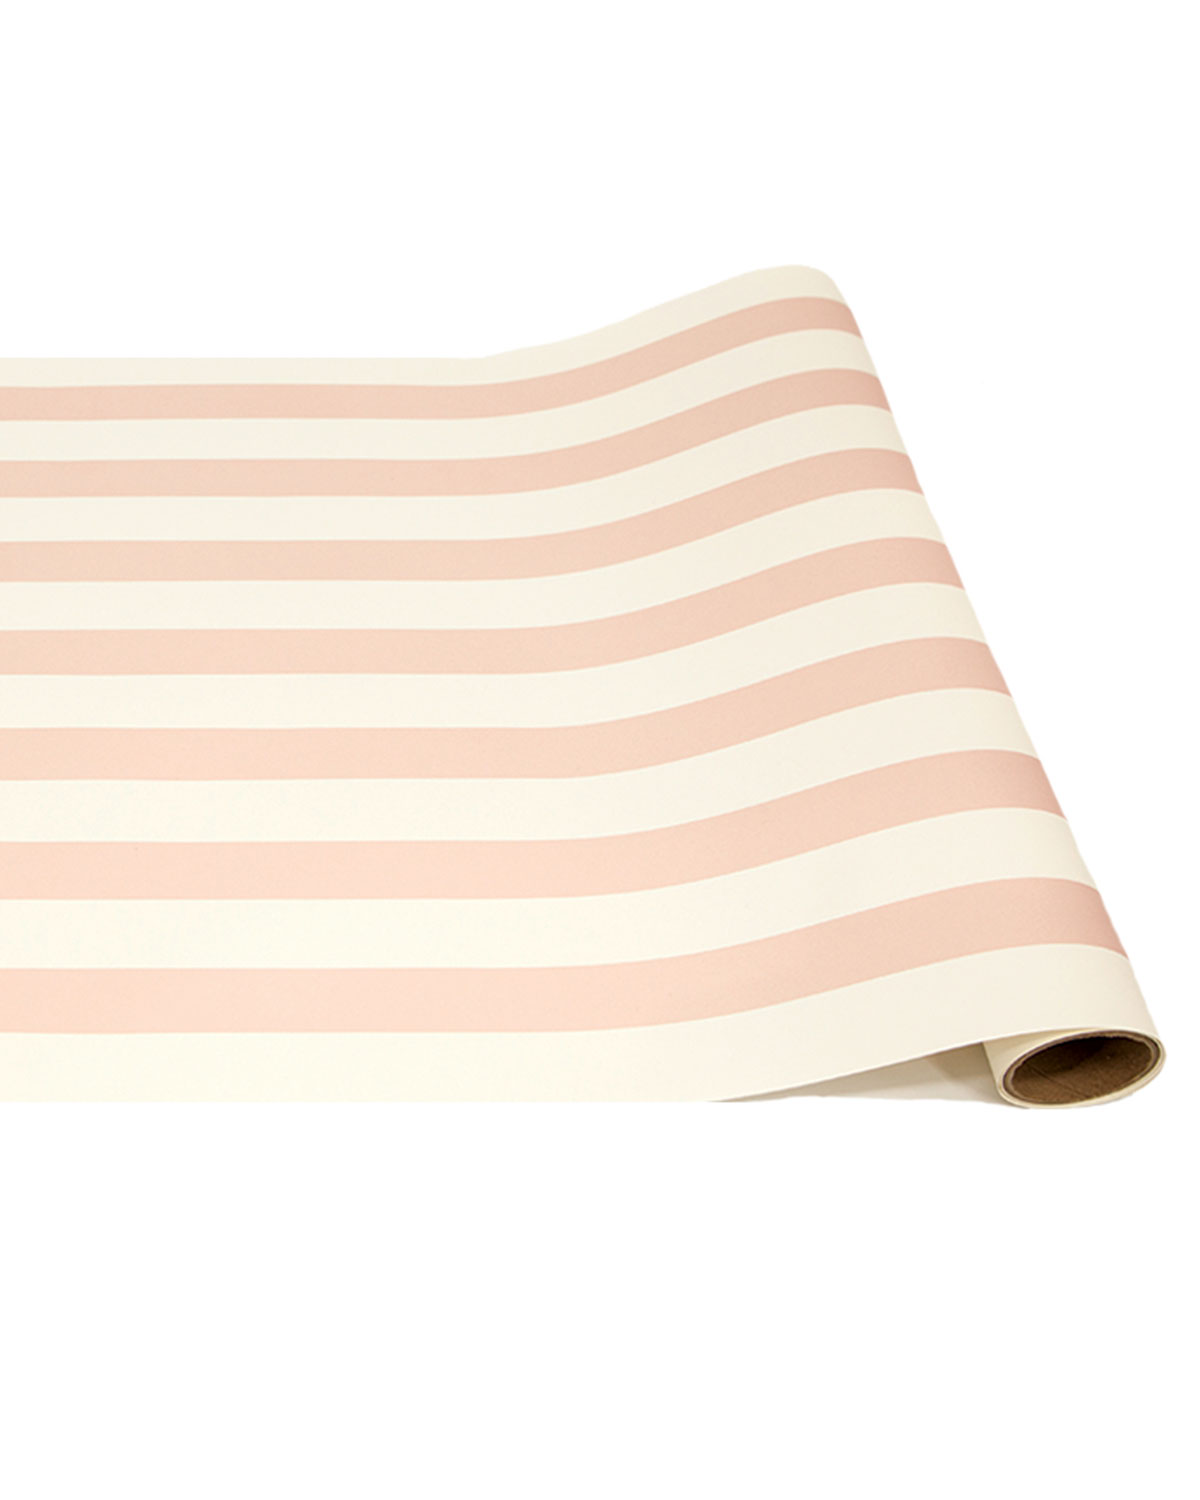 Hester & Cook Pink Classic Stripe Paper Table Runner